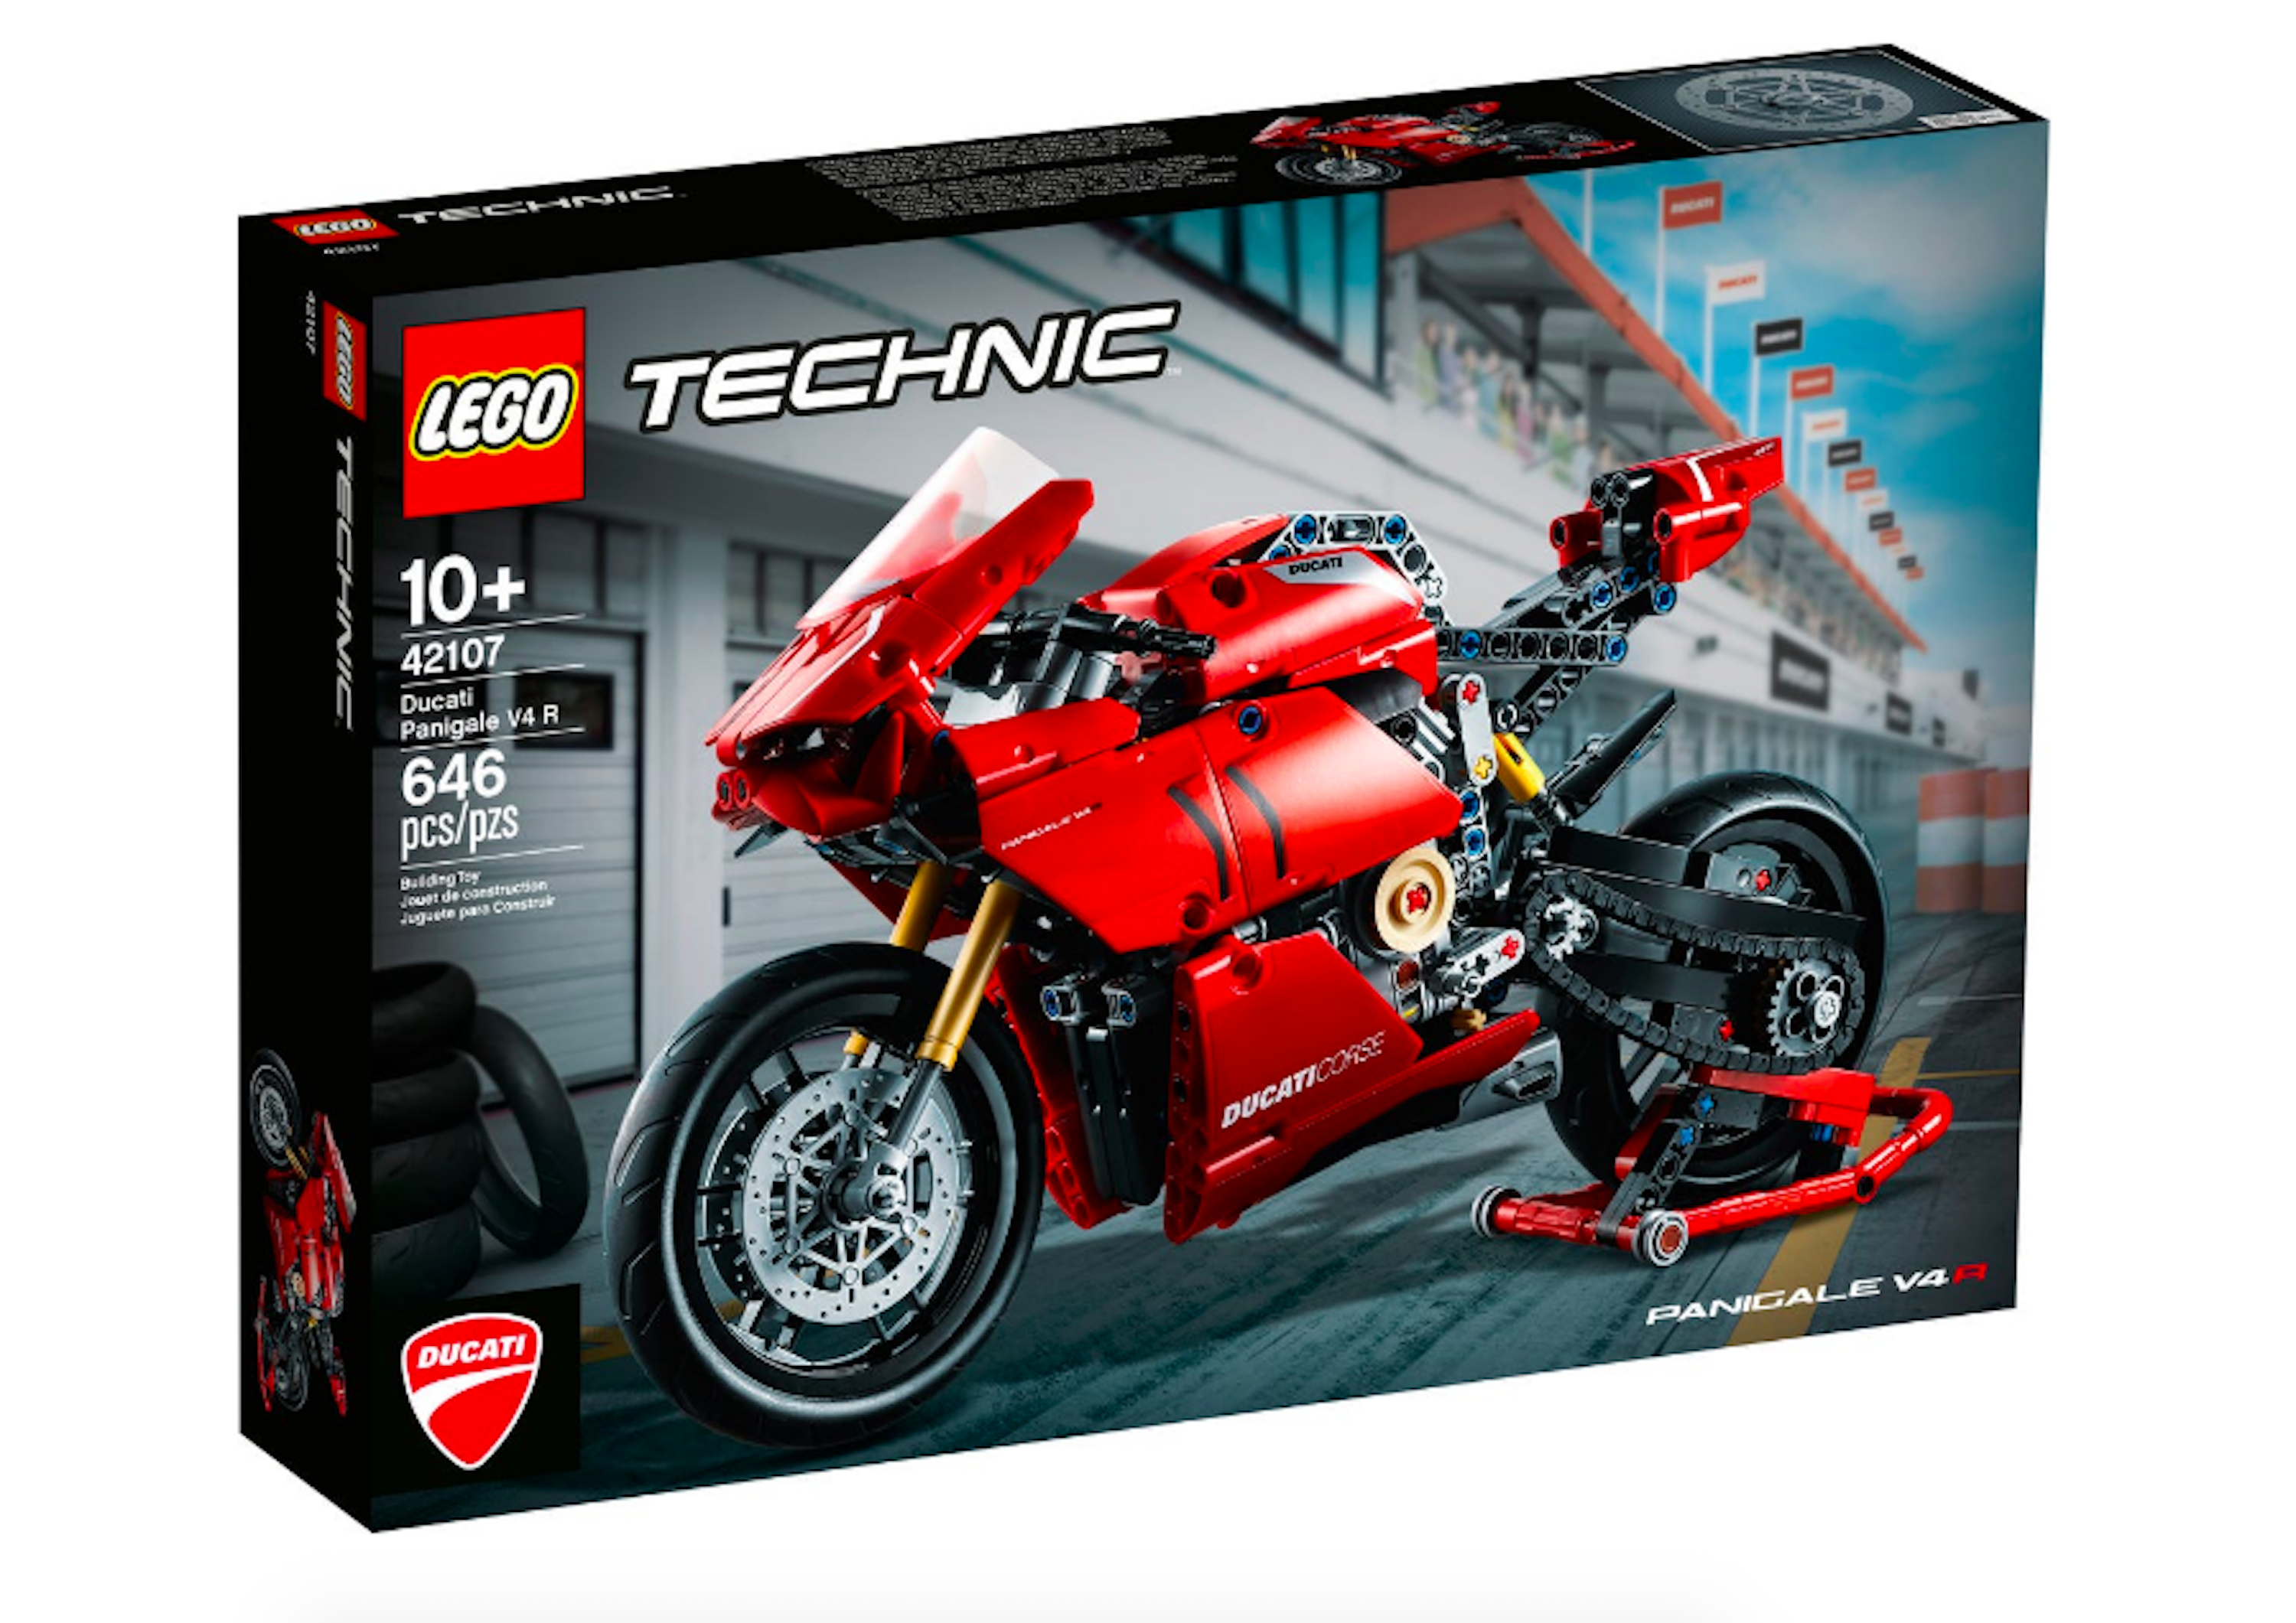 <p>The Lego Technic Ducati Panigale V4 R is set to come out on August 1st and will retail for $69.99.</p>